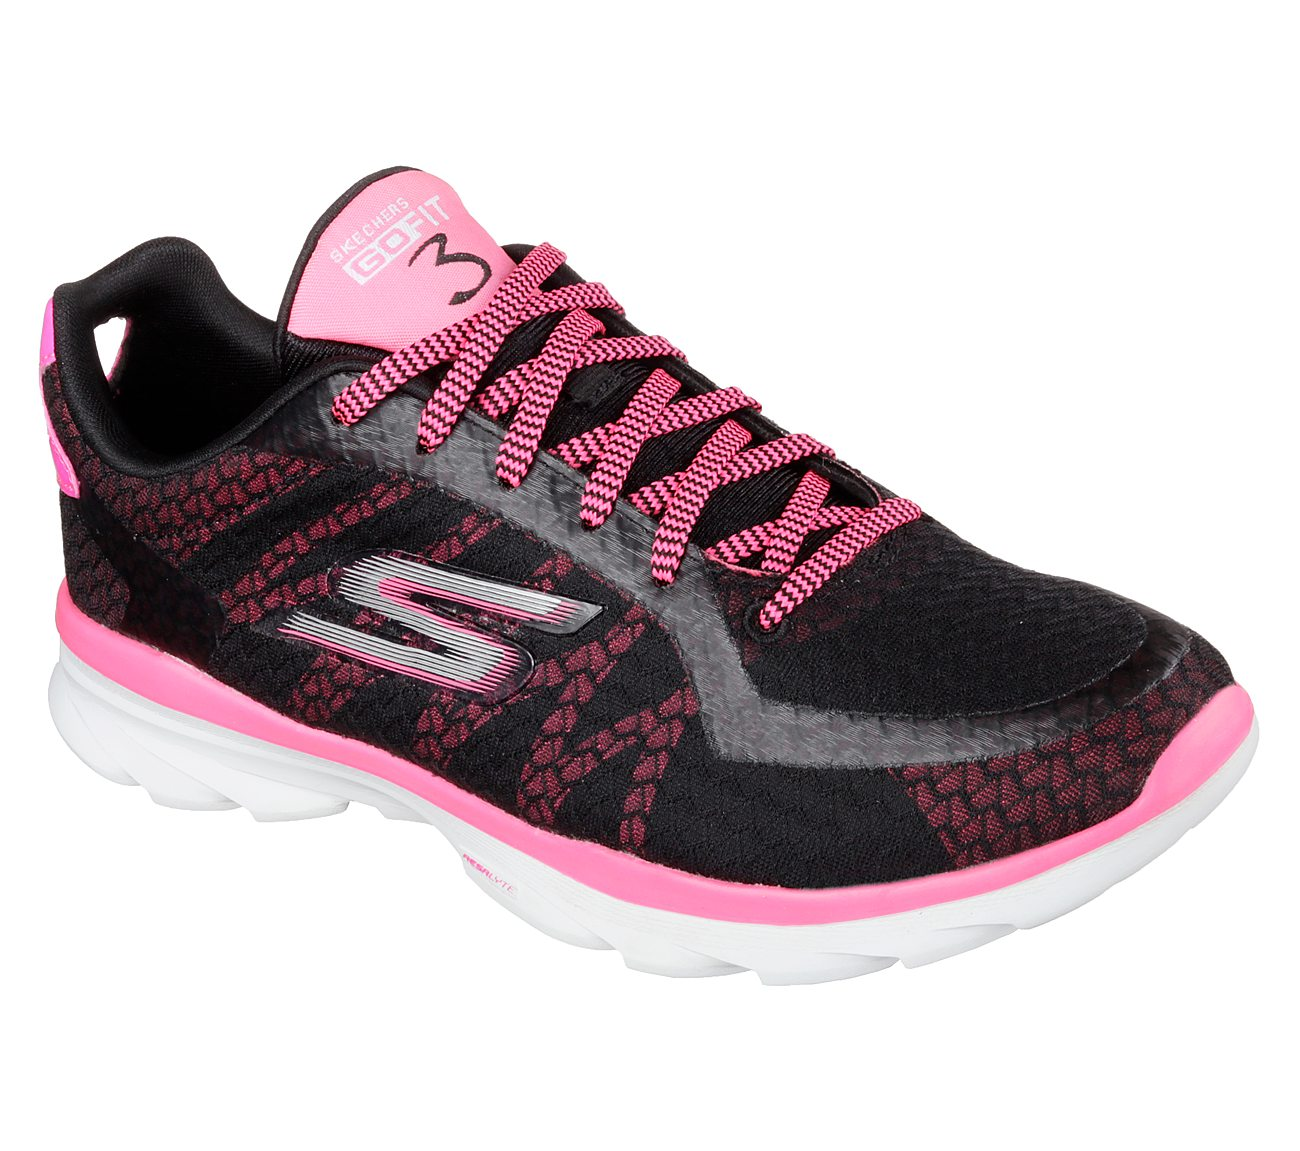 Skechers GOfit 3 Skechers Performance Shoes